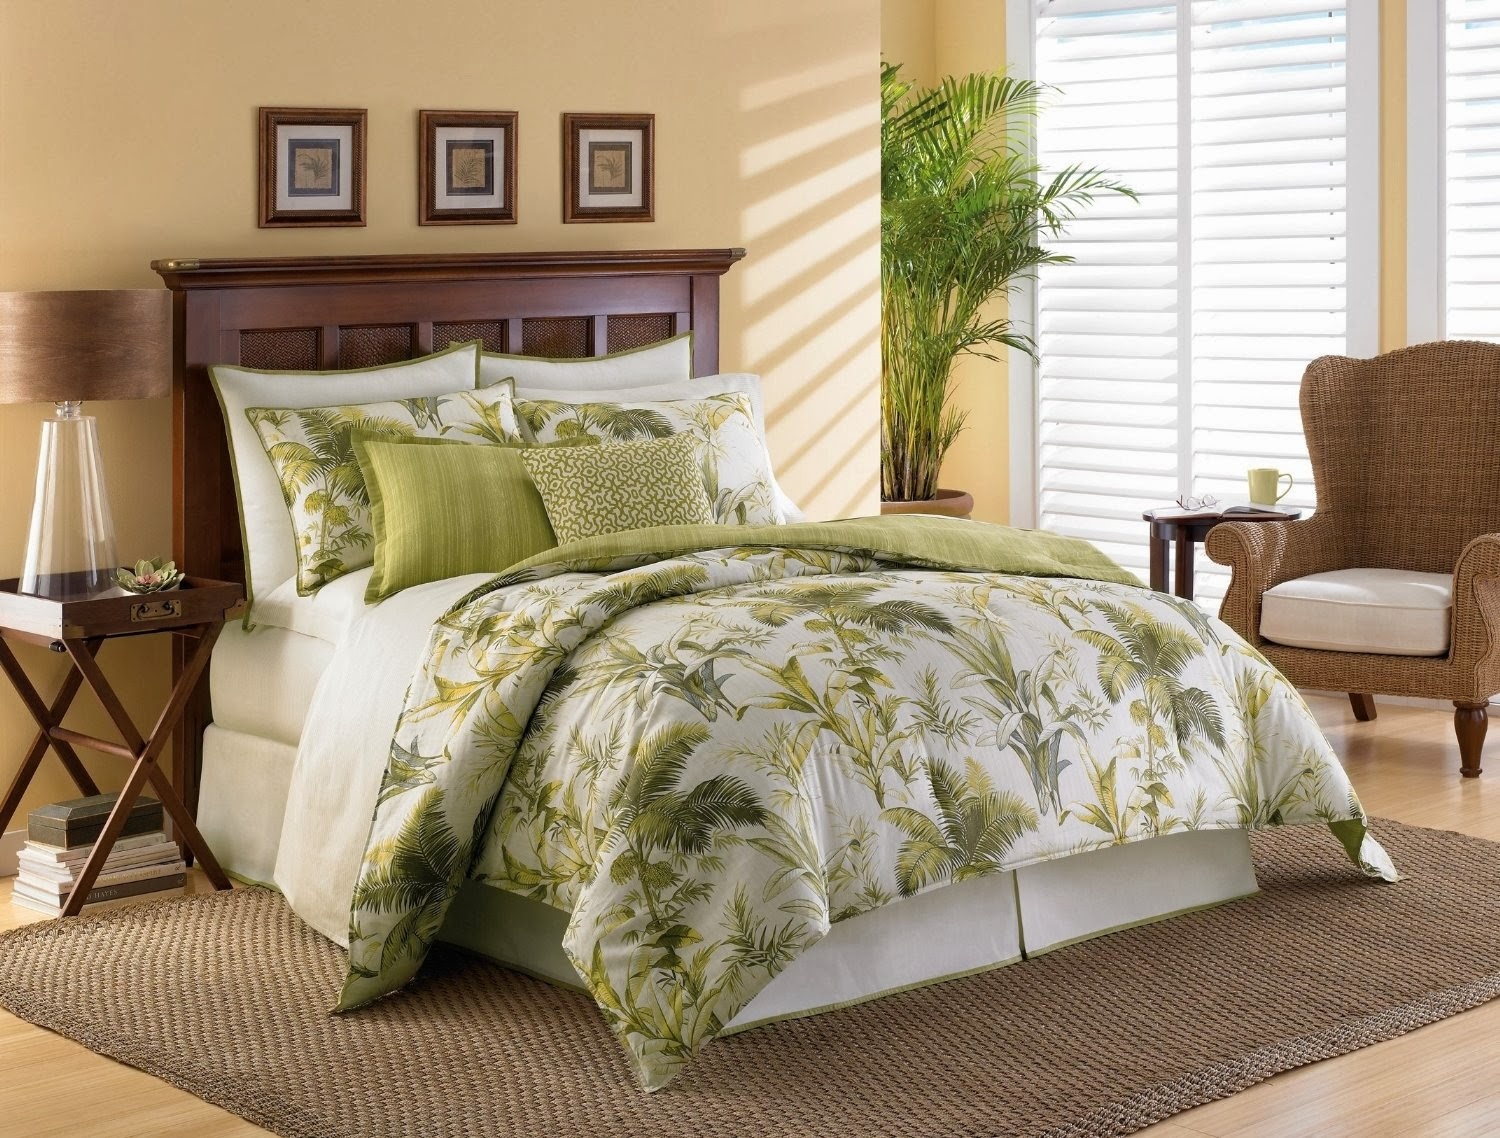 Harbor House Crystal Beach 4 Piece Comforter Set, White: